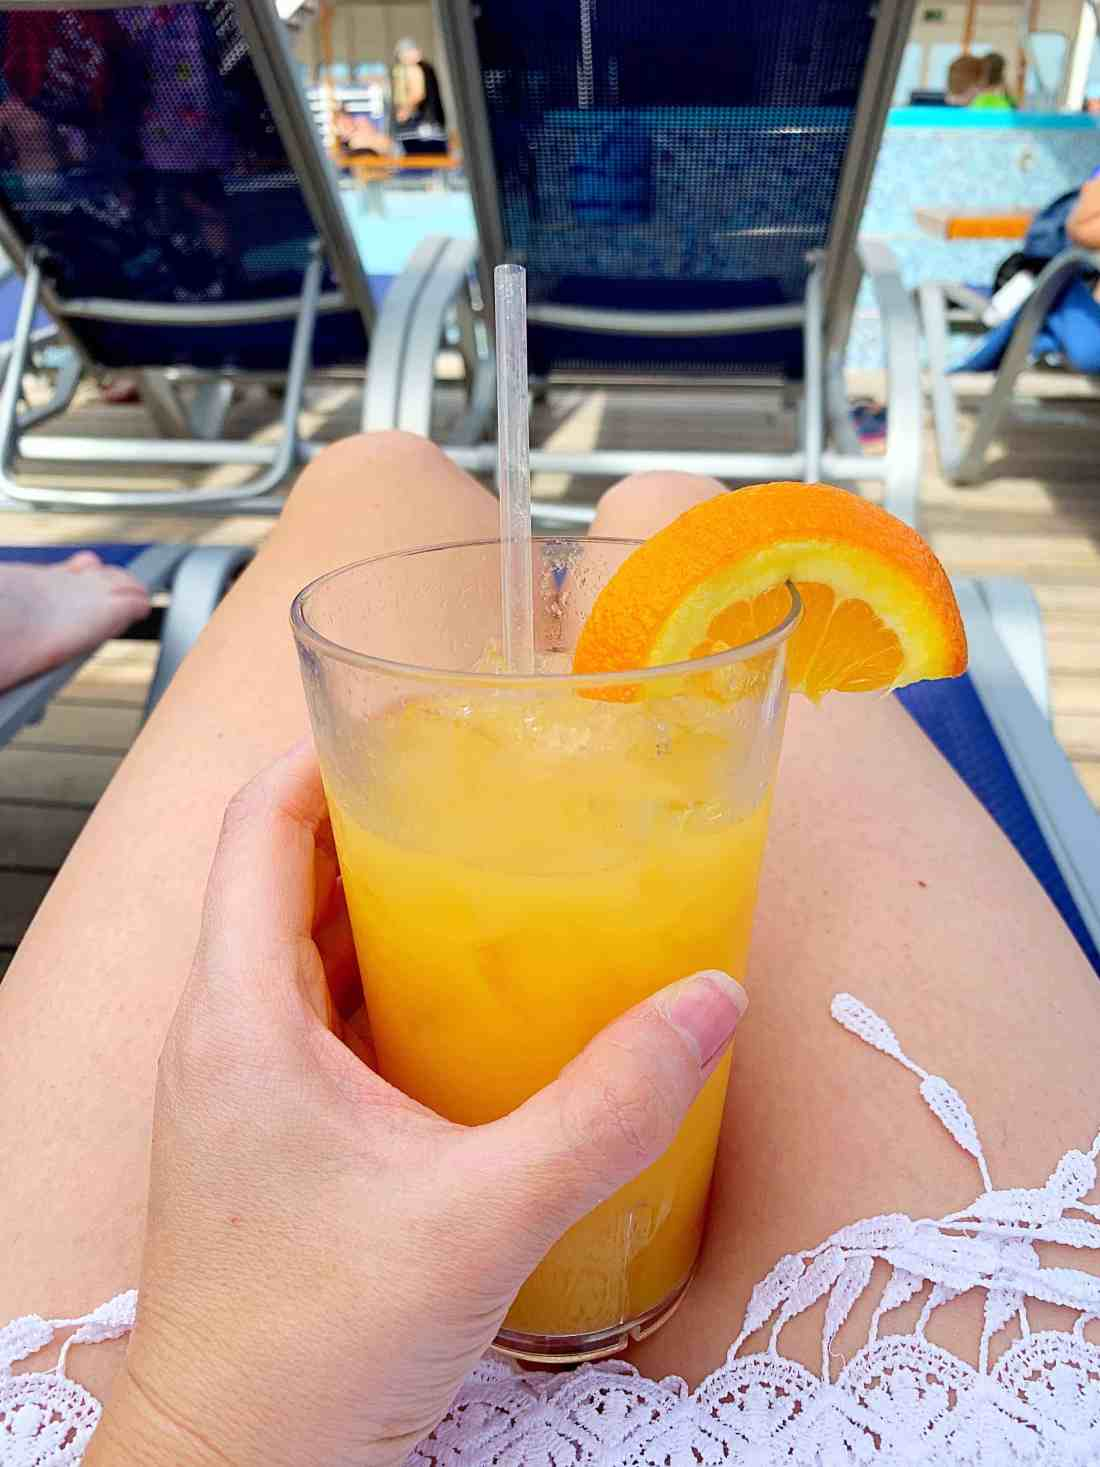 Our Family's First Cruise - Bahamas Carnival Elation Vacation Recap